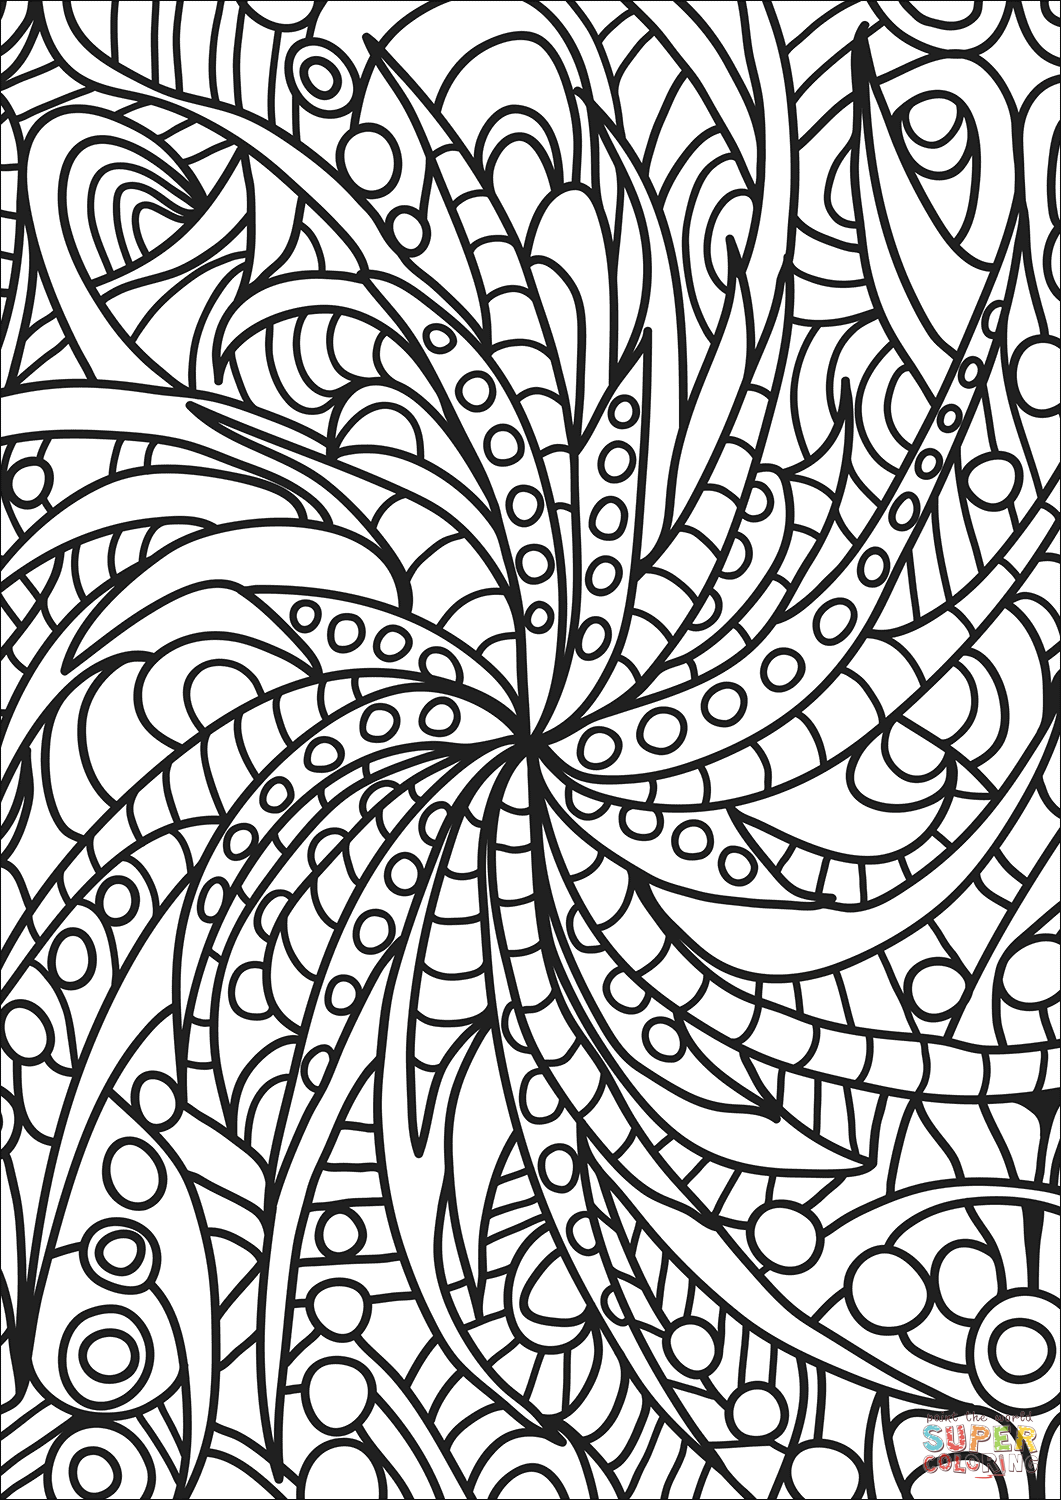 free abstract coloring pages coloring pages abstract coloring pages free and printable coloring abstract pages free